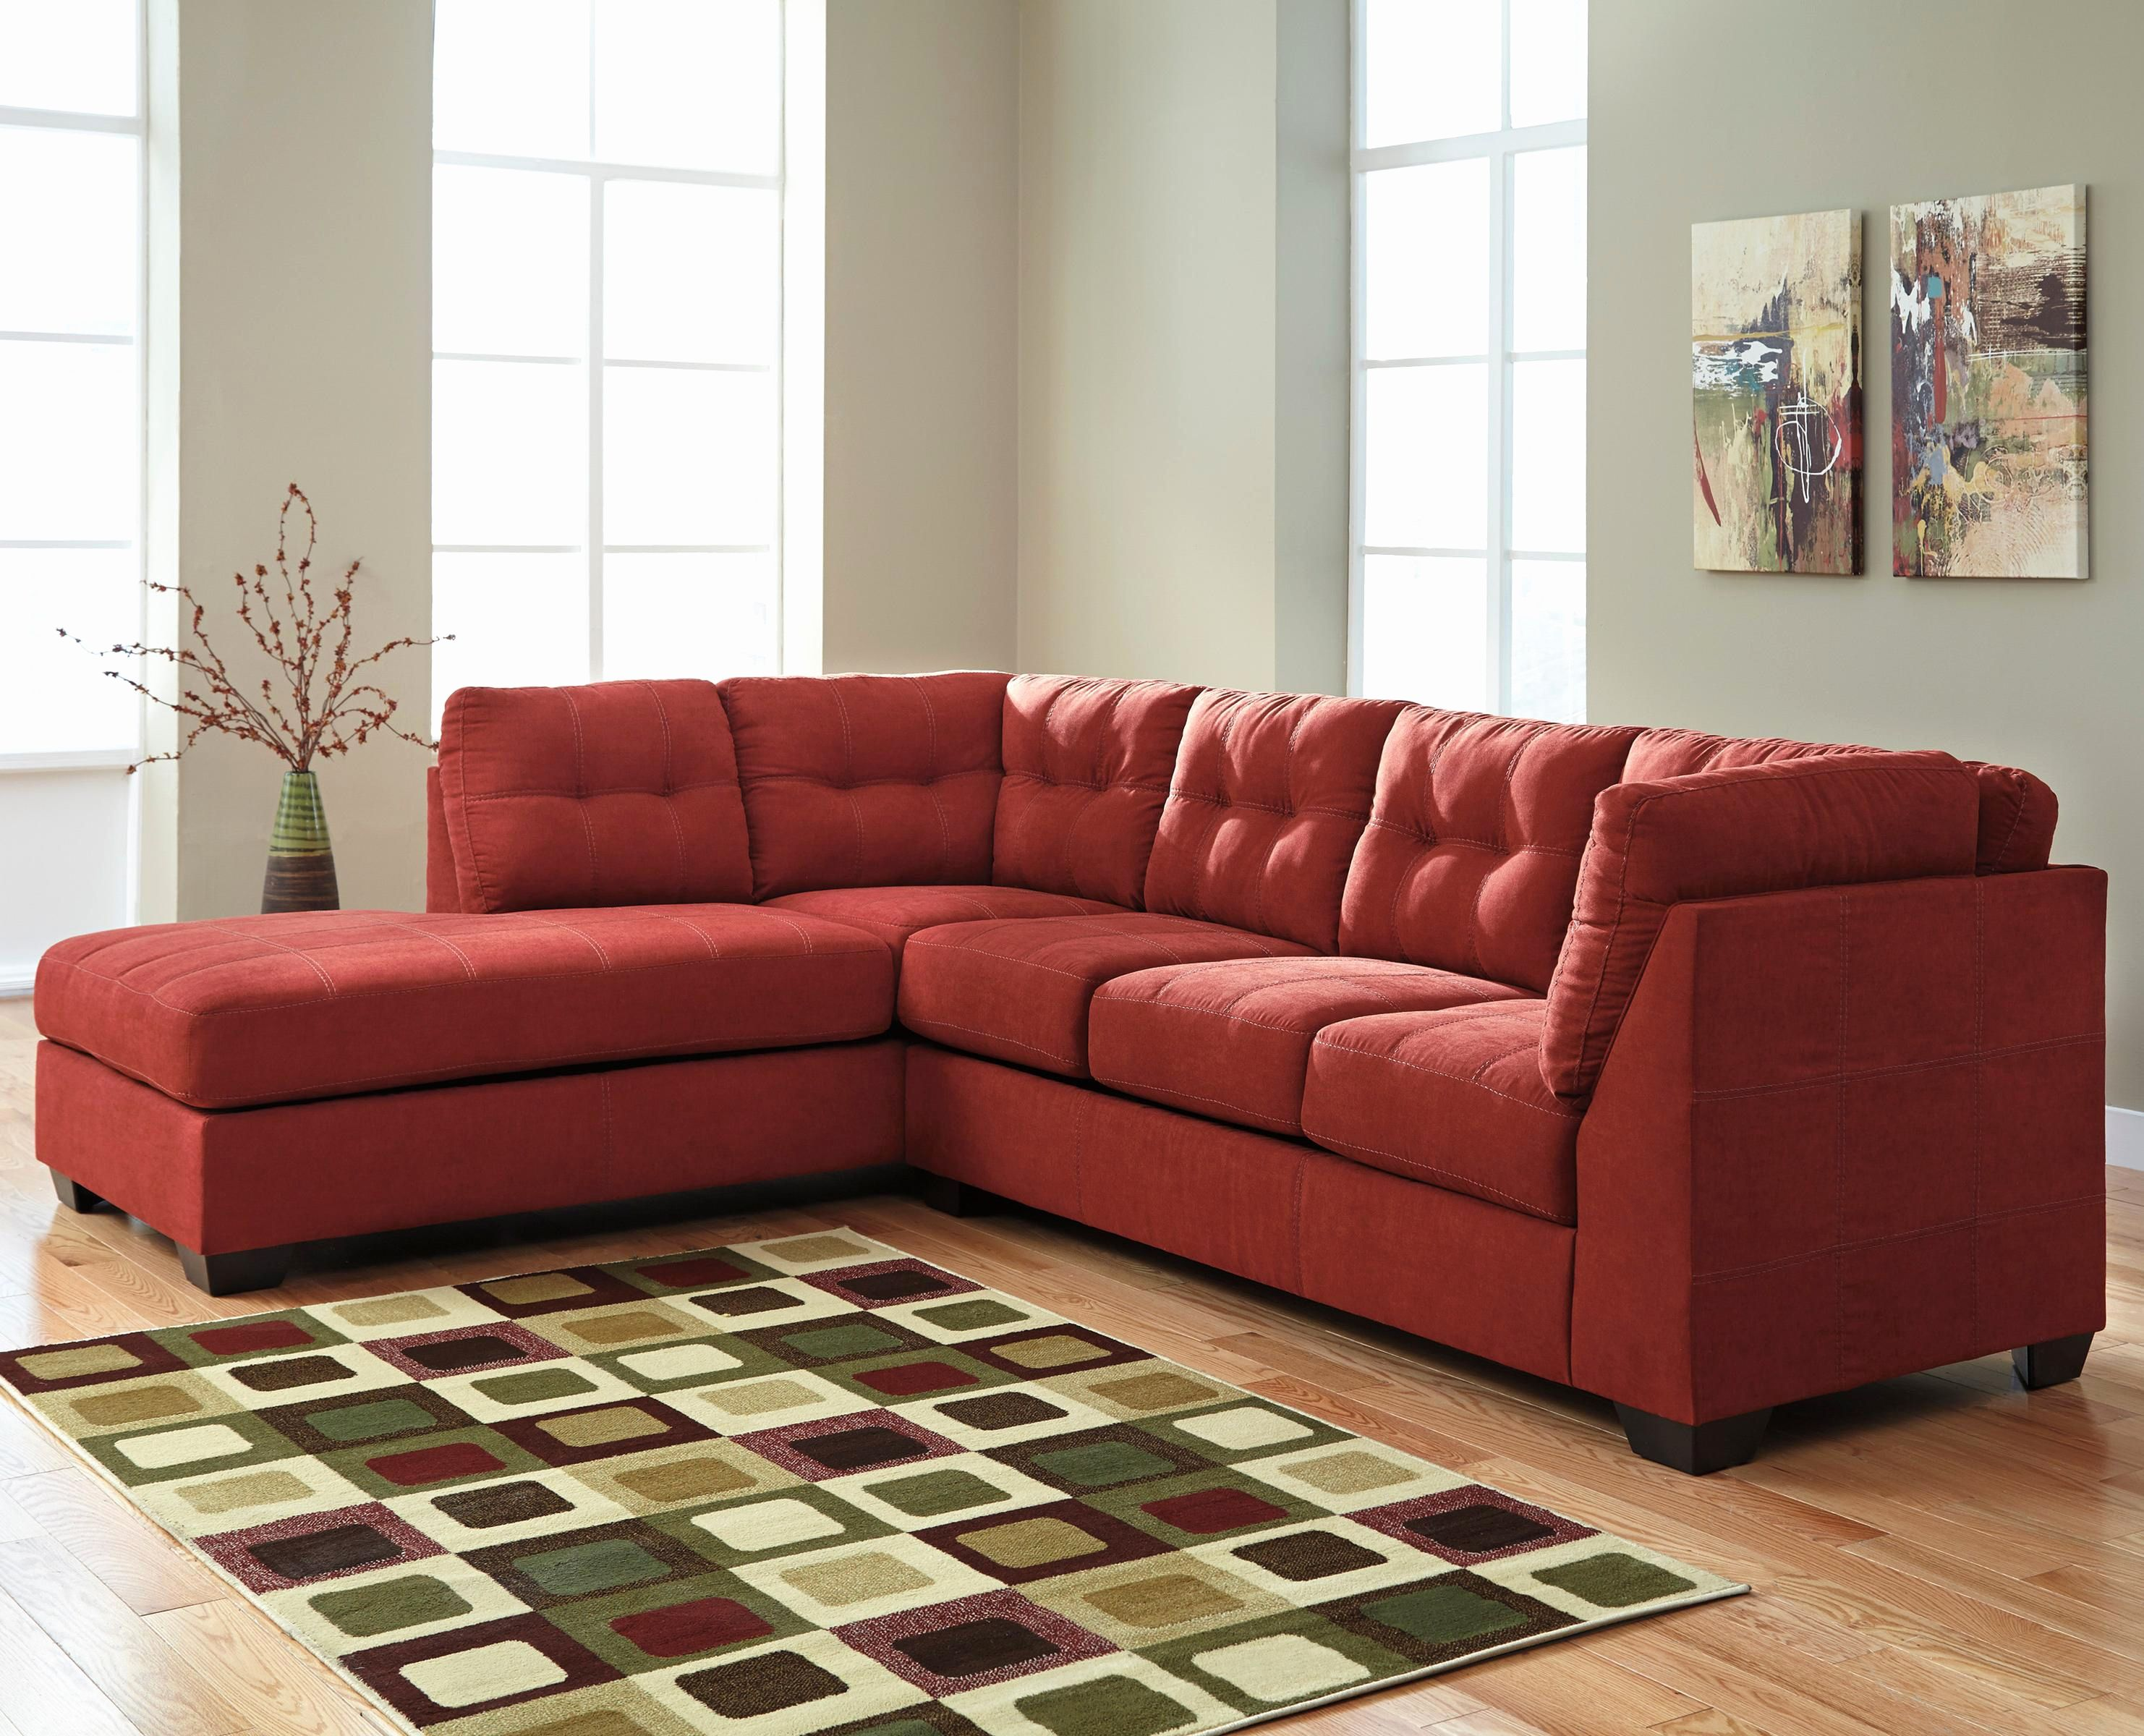 Ideas Red Sectional sofa with Chaise Photos Red Sectional sofa with ...